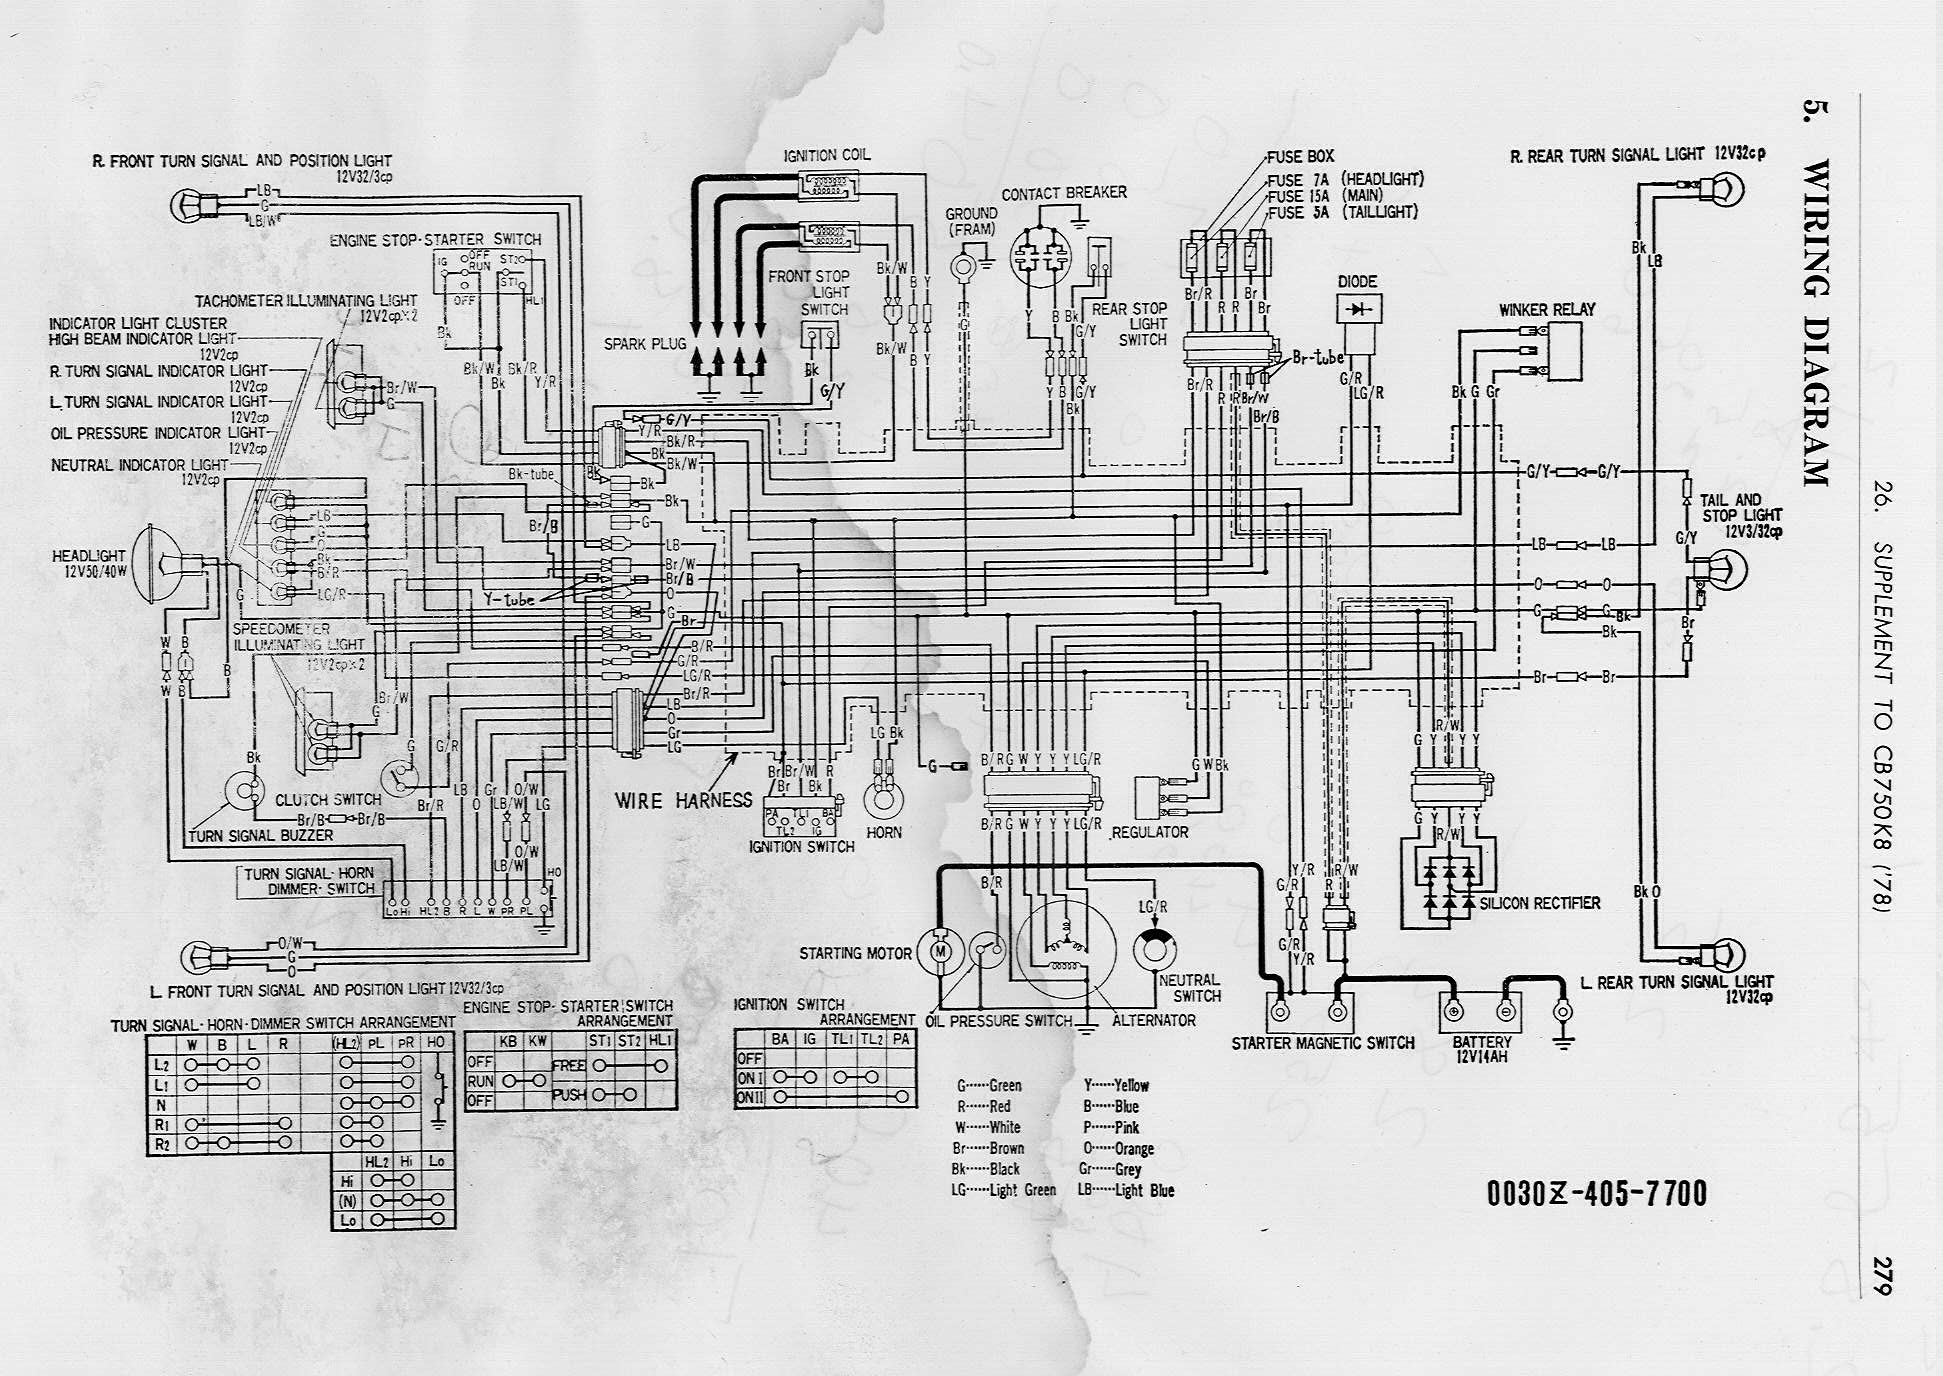 1985 honda atc 250sx wiring diagram imageresizertool com 1985 honda 200m wiring  diagram